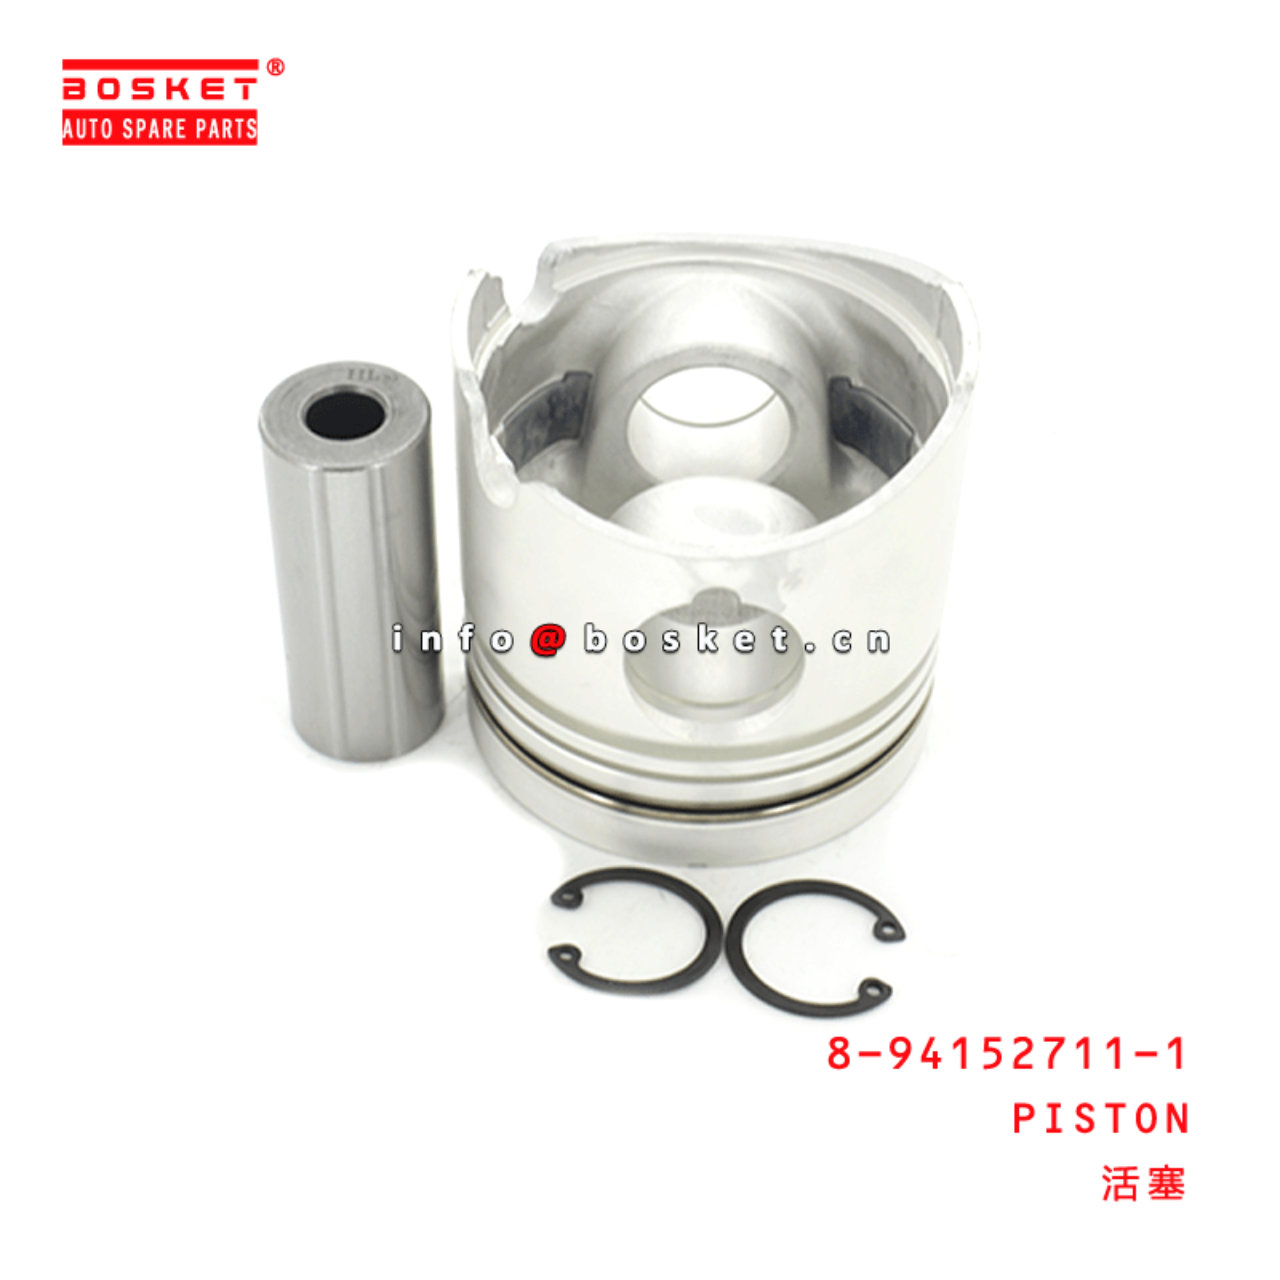 8-94152711-1 Piston 8941527111 Suitable for ISUZU 4JB1